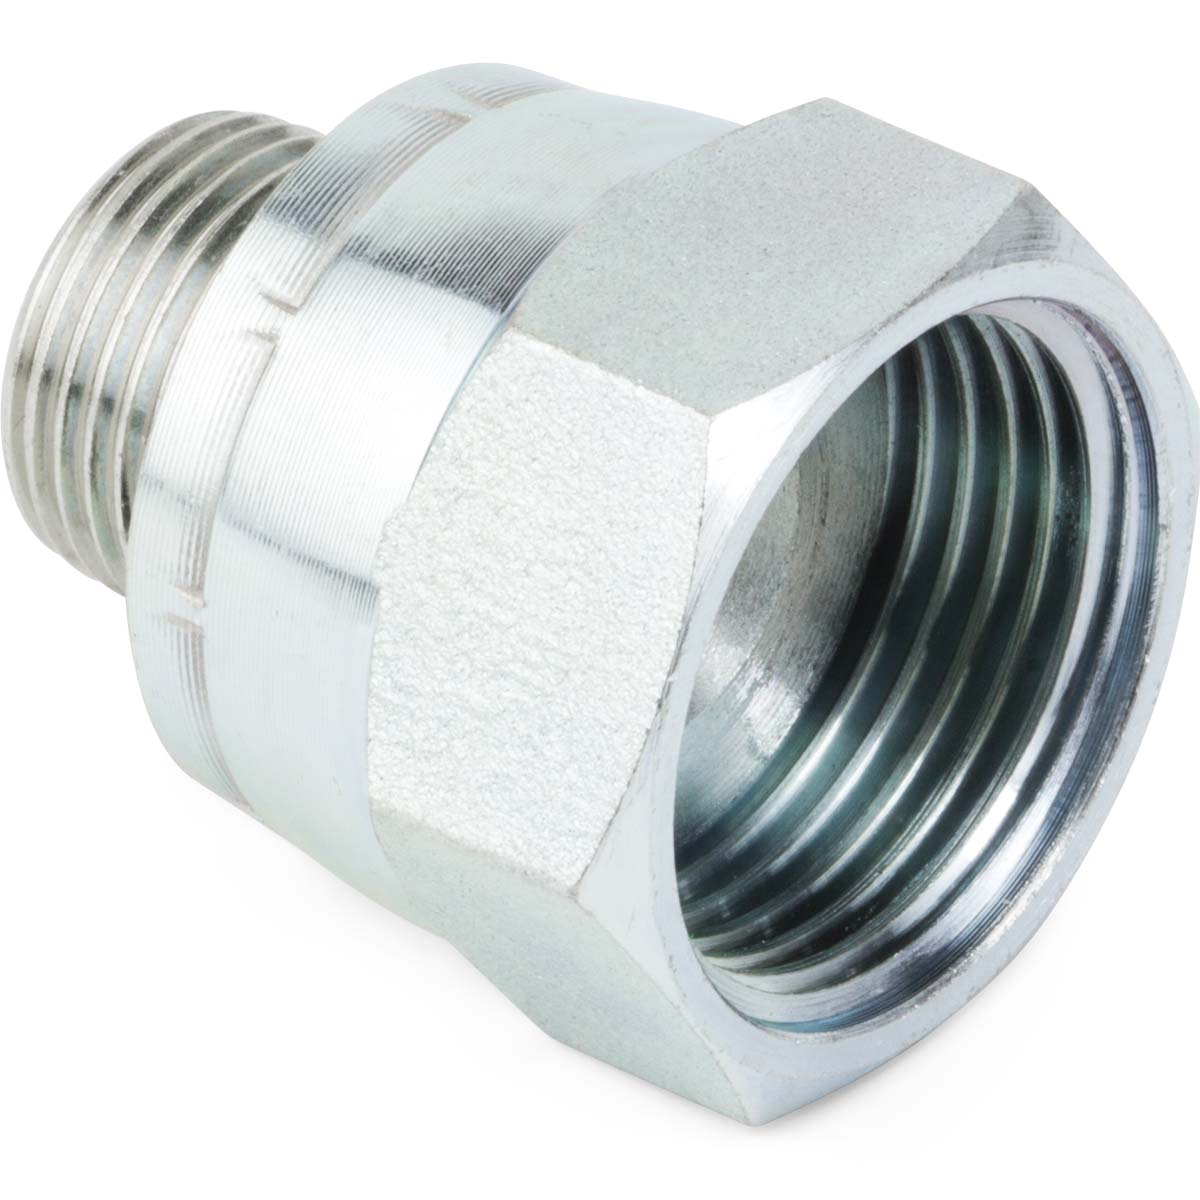 For seal tube end reducer kimball midwest